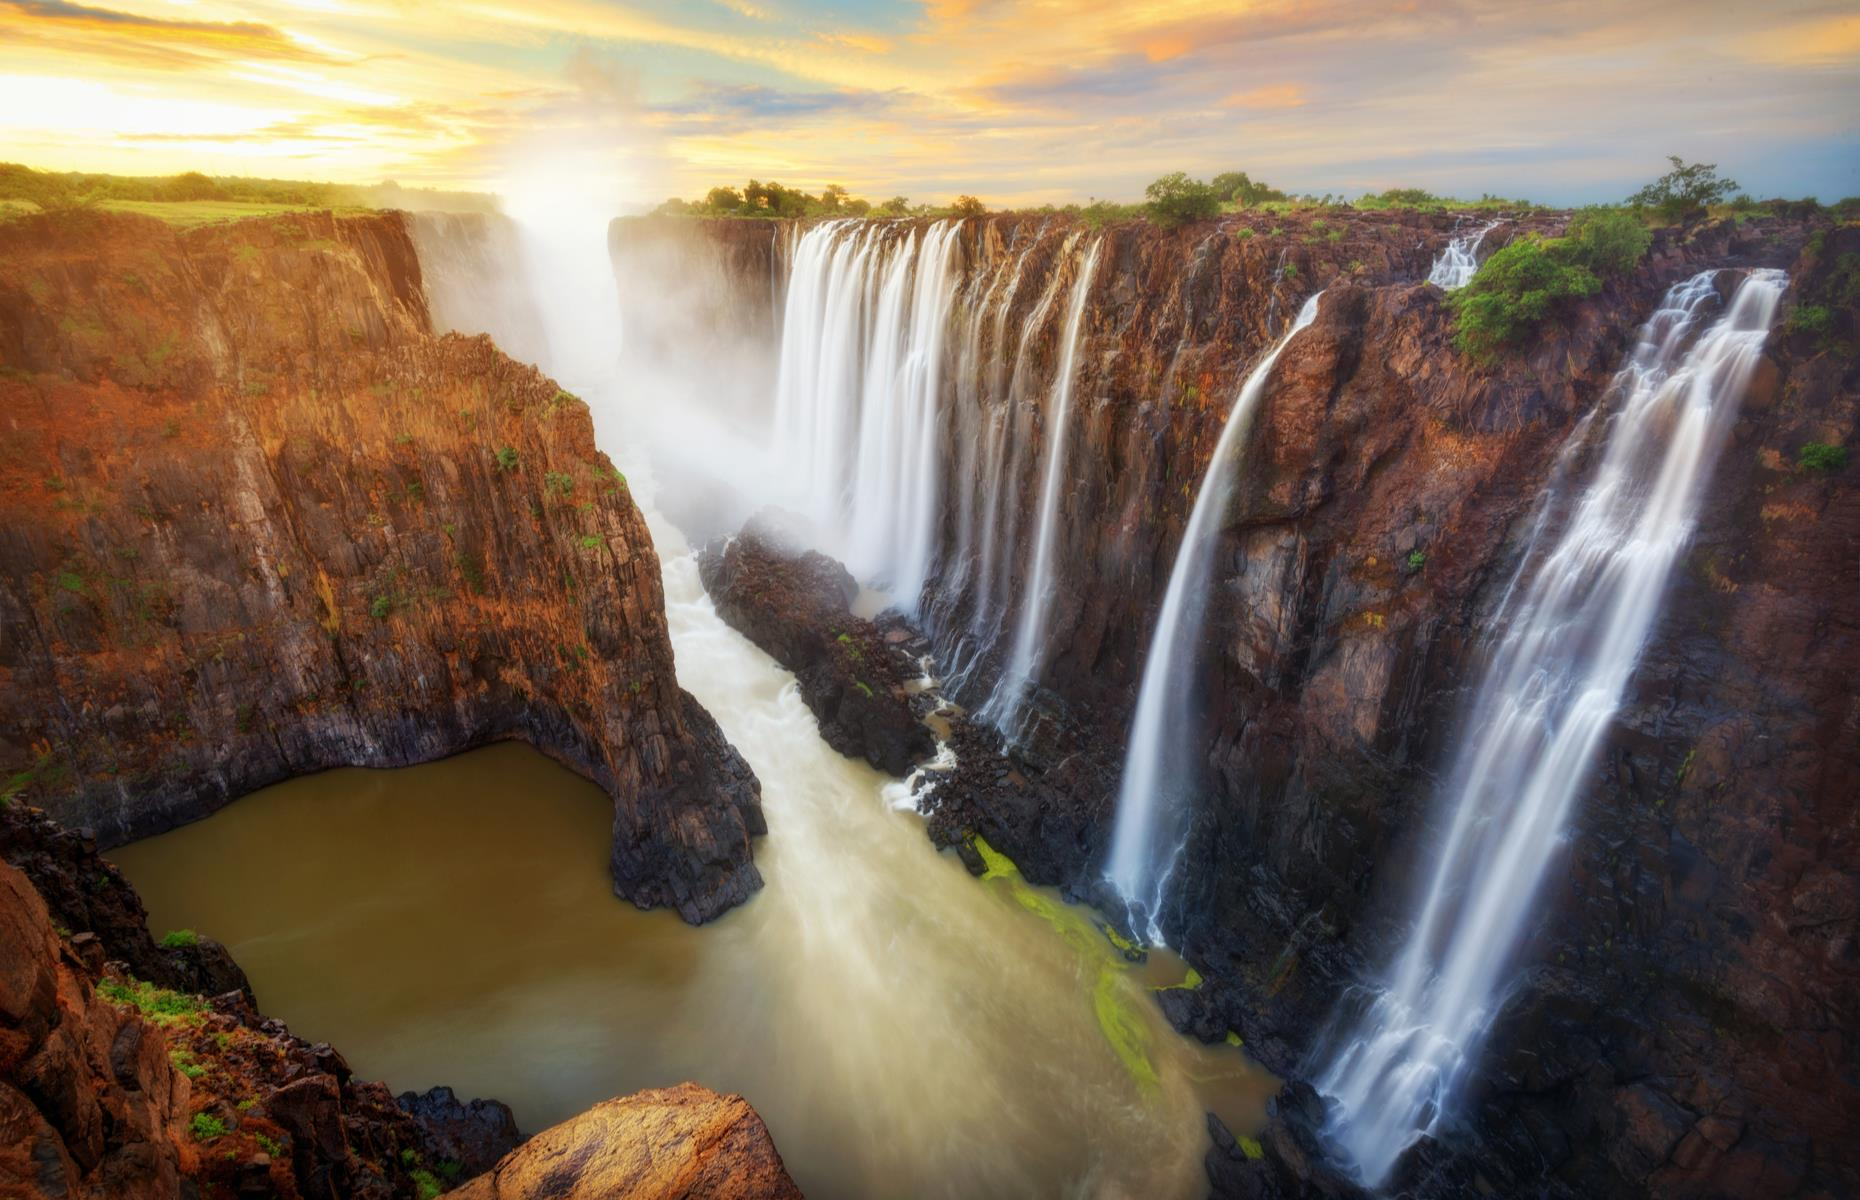 Slide 10 of 30: However you look at it, this huge, thundering waterfall on the Zambezi River is pretty incredible. Straddling Zimbabwe and Zambia, with cascades more than 5,500 feet (1,700m) wide and 355 feet (108m) tall, it's one of the world's largest and most iconic waterfalls. It's also among the loudest, making such a racket and creating such a cloud of mist that the Kalolo-Lozi people named it Mosi-oa-Tunya, or 'The Smoke That Thunders'.